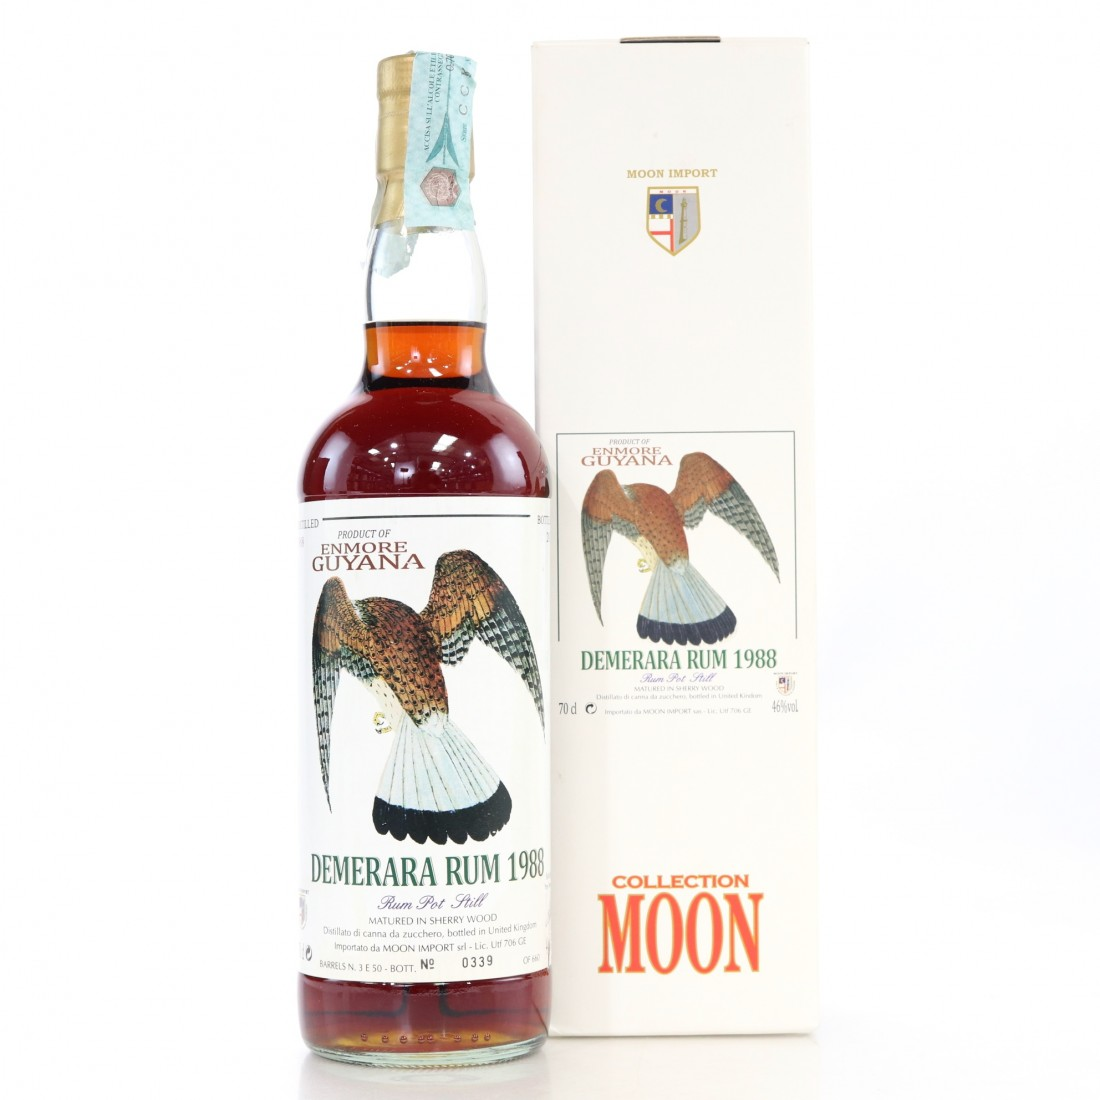 Enmore 1988 Moon Import Sherry Wood